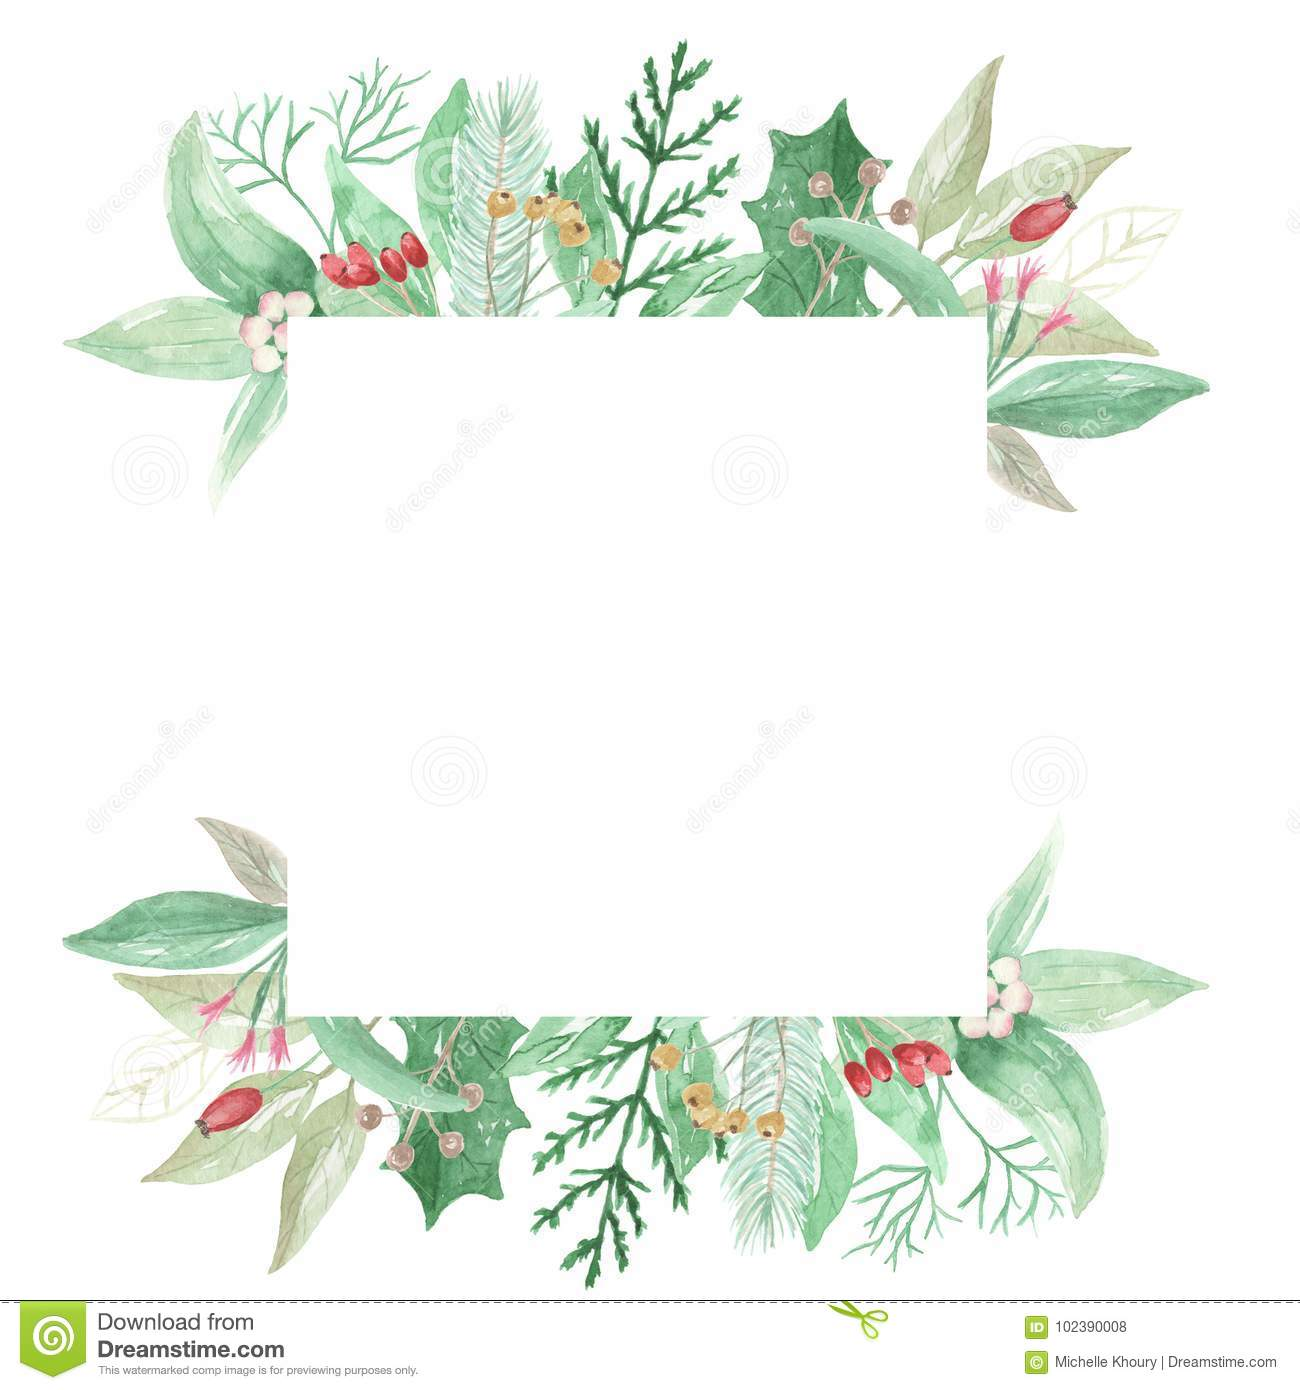 watercolor christmas leaves flowers berries festive square holly leaves clipart png holly leaves clipart black and white